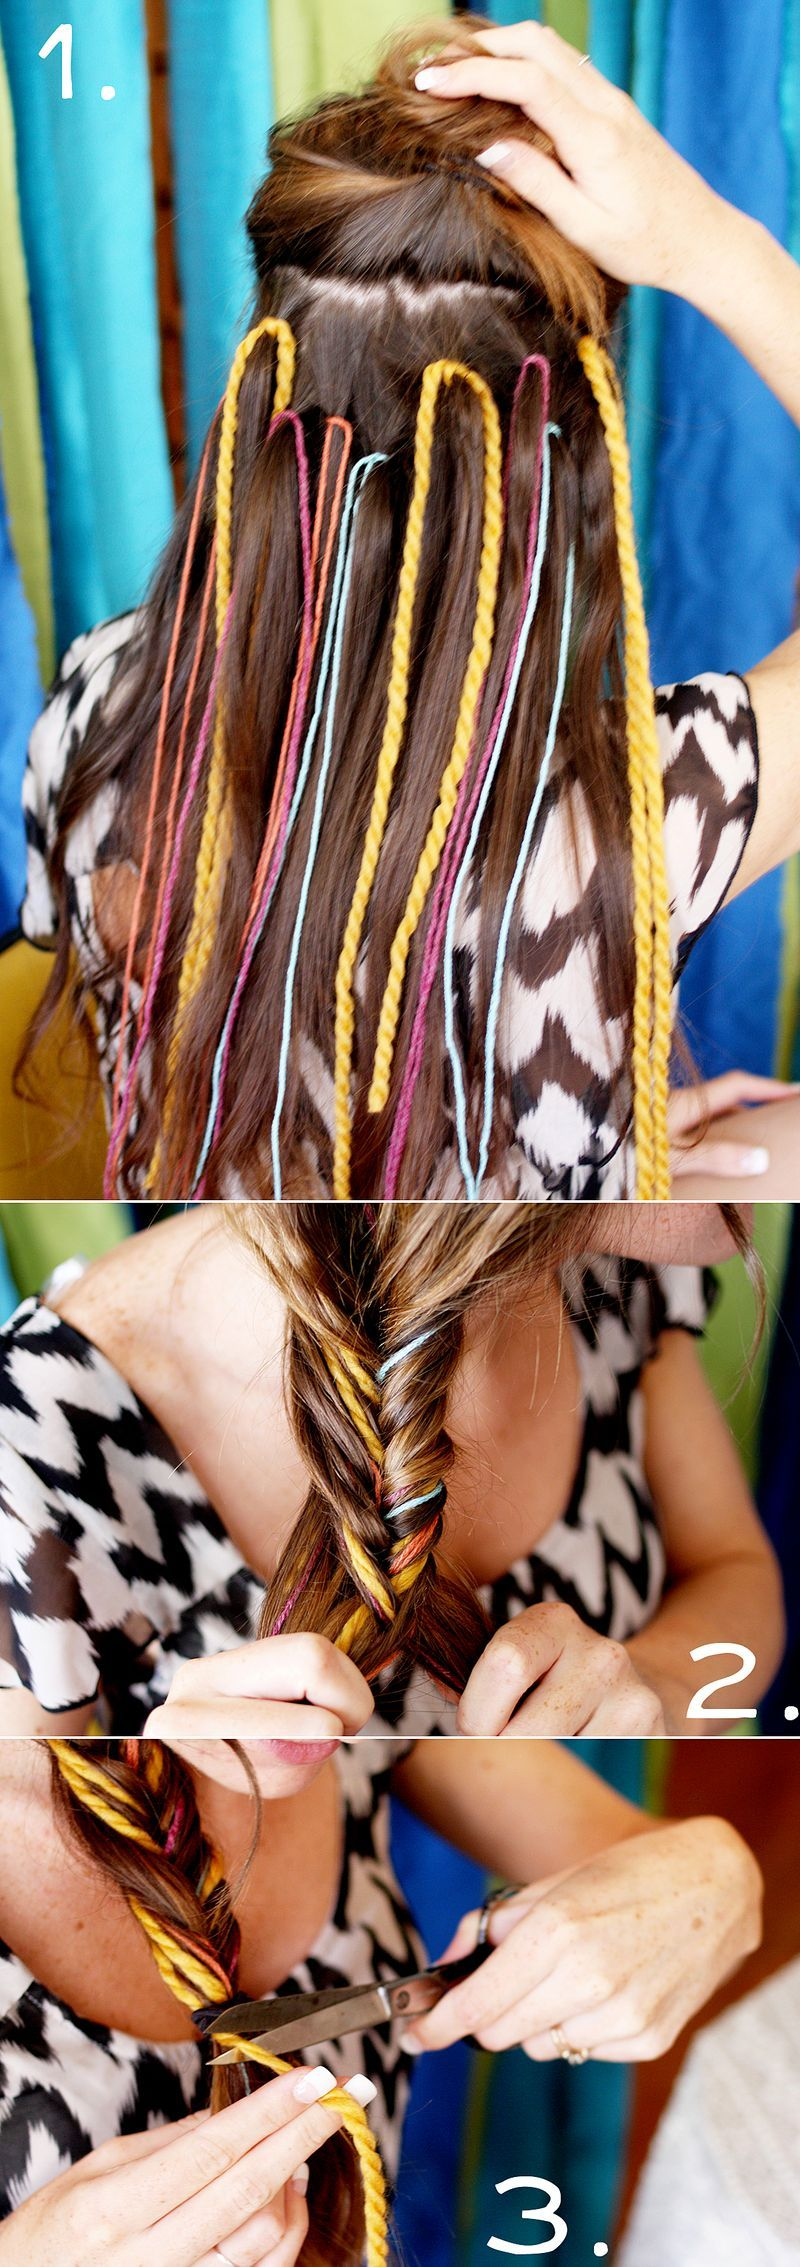 How To Style A Fishtail Braid Frisuren Haarfrisuren Indianer